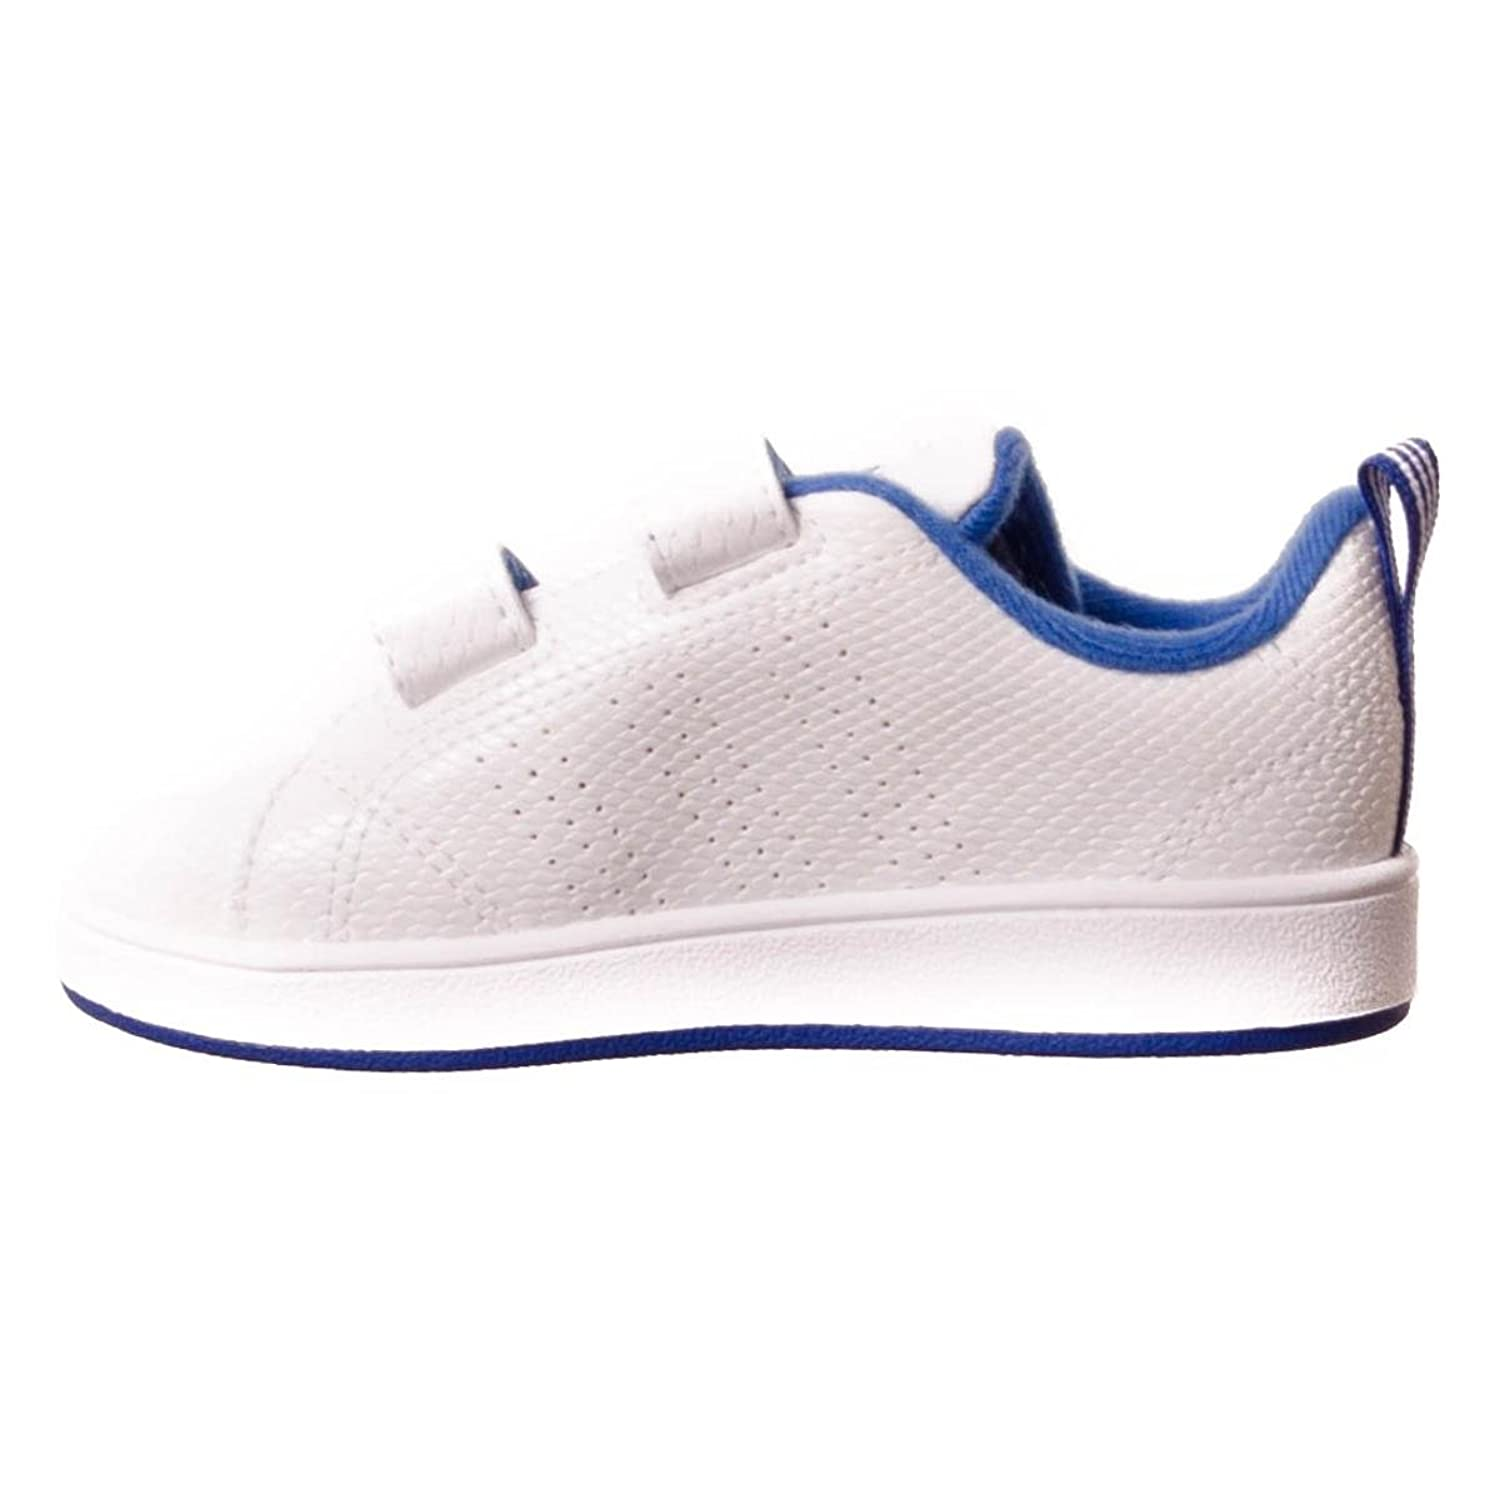 Adidas Vs Advantage Clean Cmf Inf jungen, synthetisch, sneaker low, 21 EU